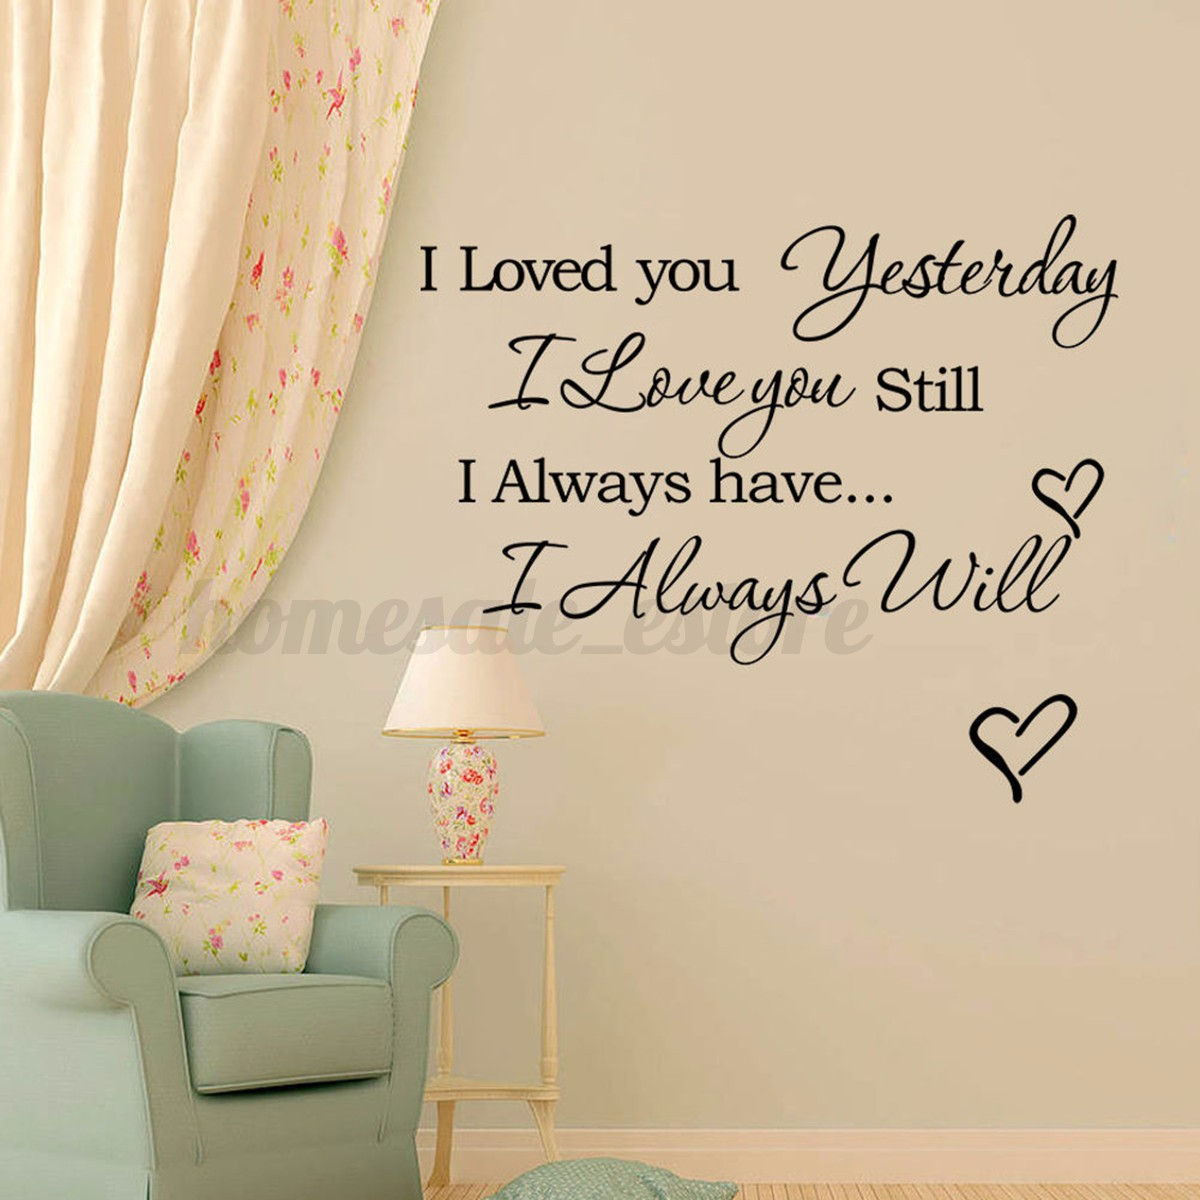 Family DIY Removable Art Vinyl Quote Wall Stickers Decal ...